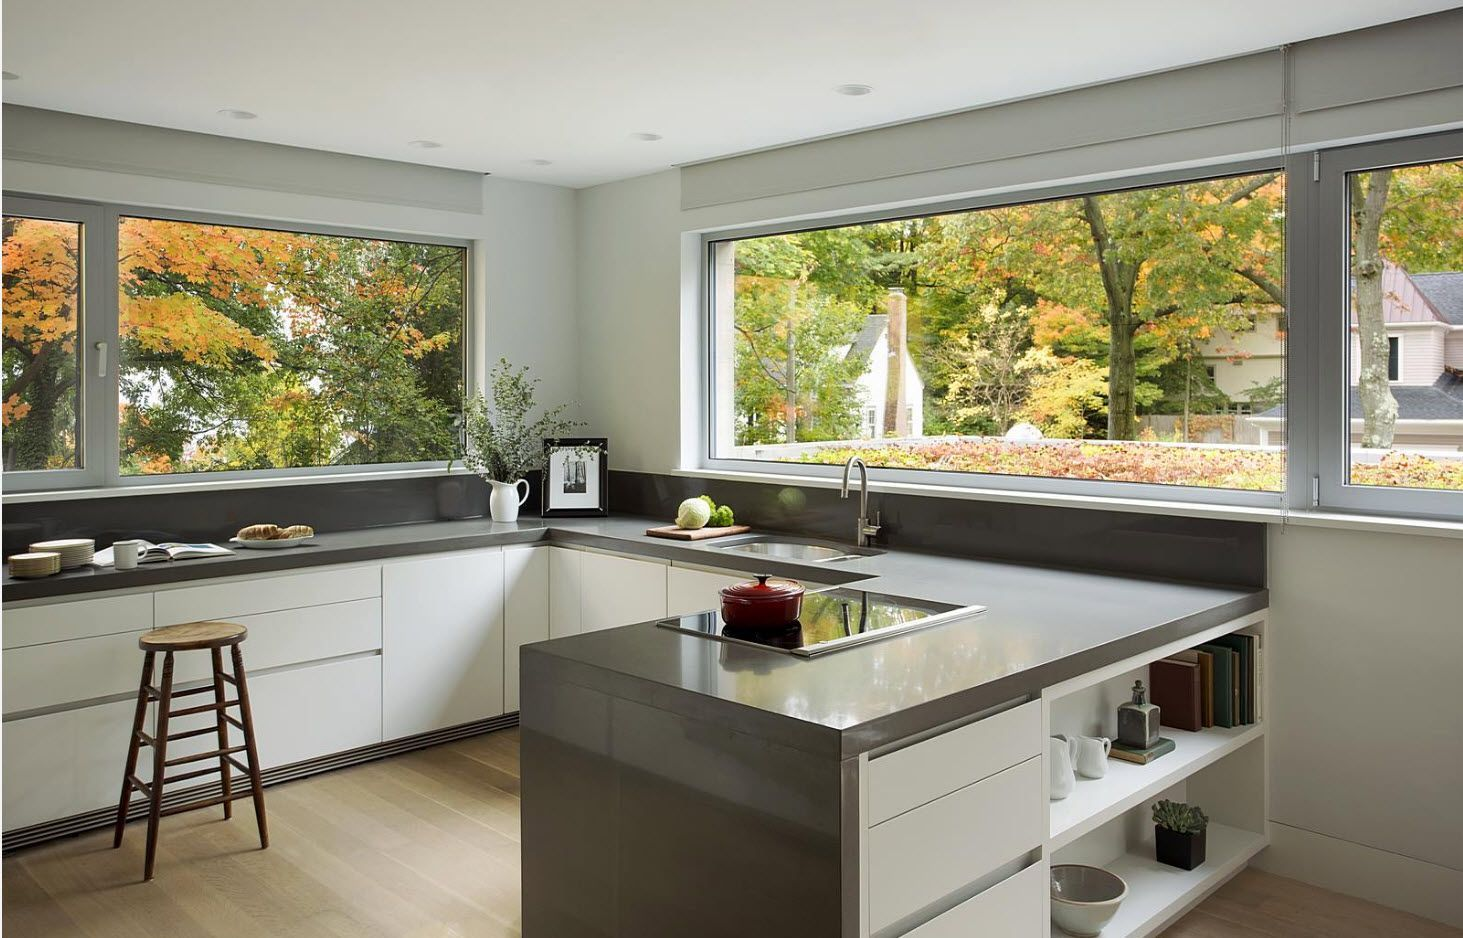 Panoramic windows on each side of the minimalistic kitchen